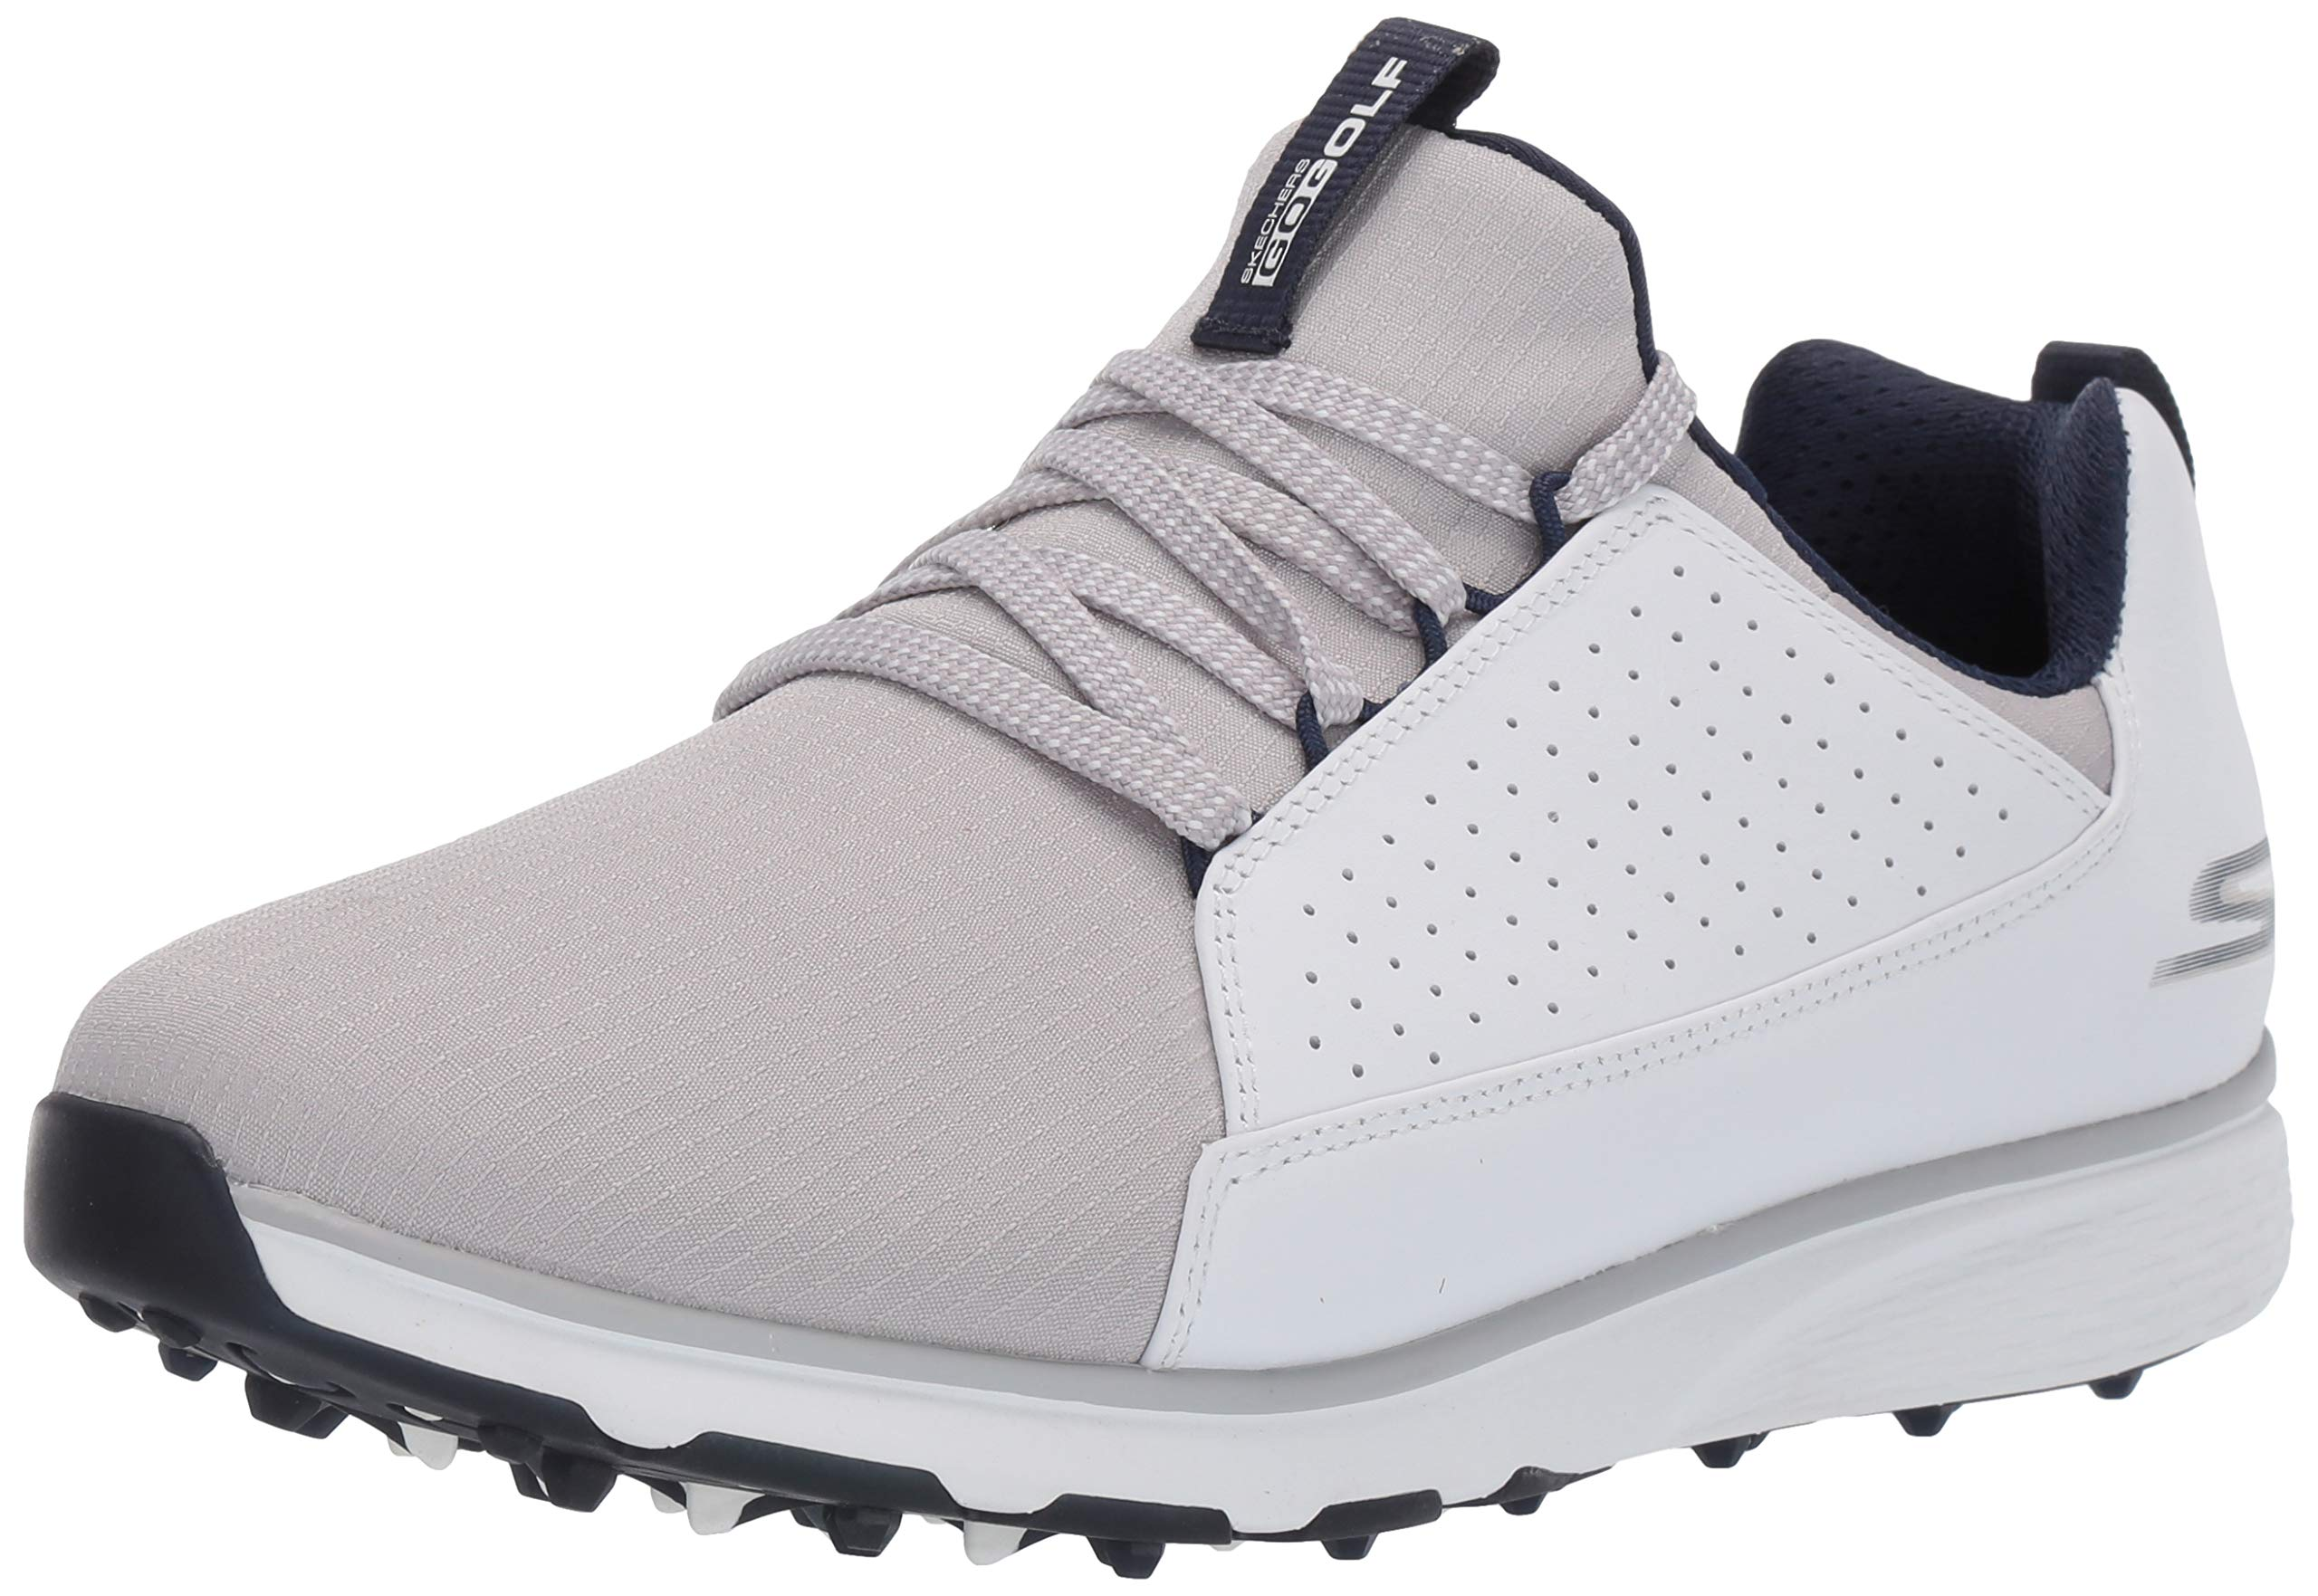 Skechers Men's Mojo Waterproof Golf Shoe, White/Gray, 13 W US by Skechers